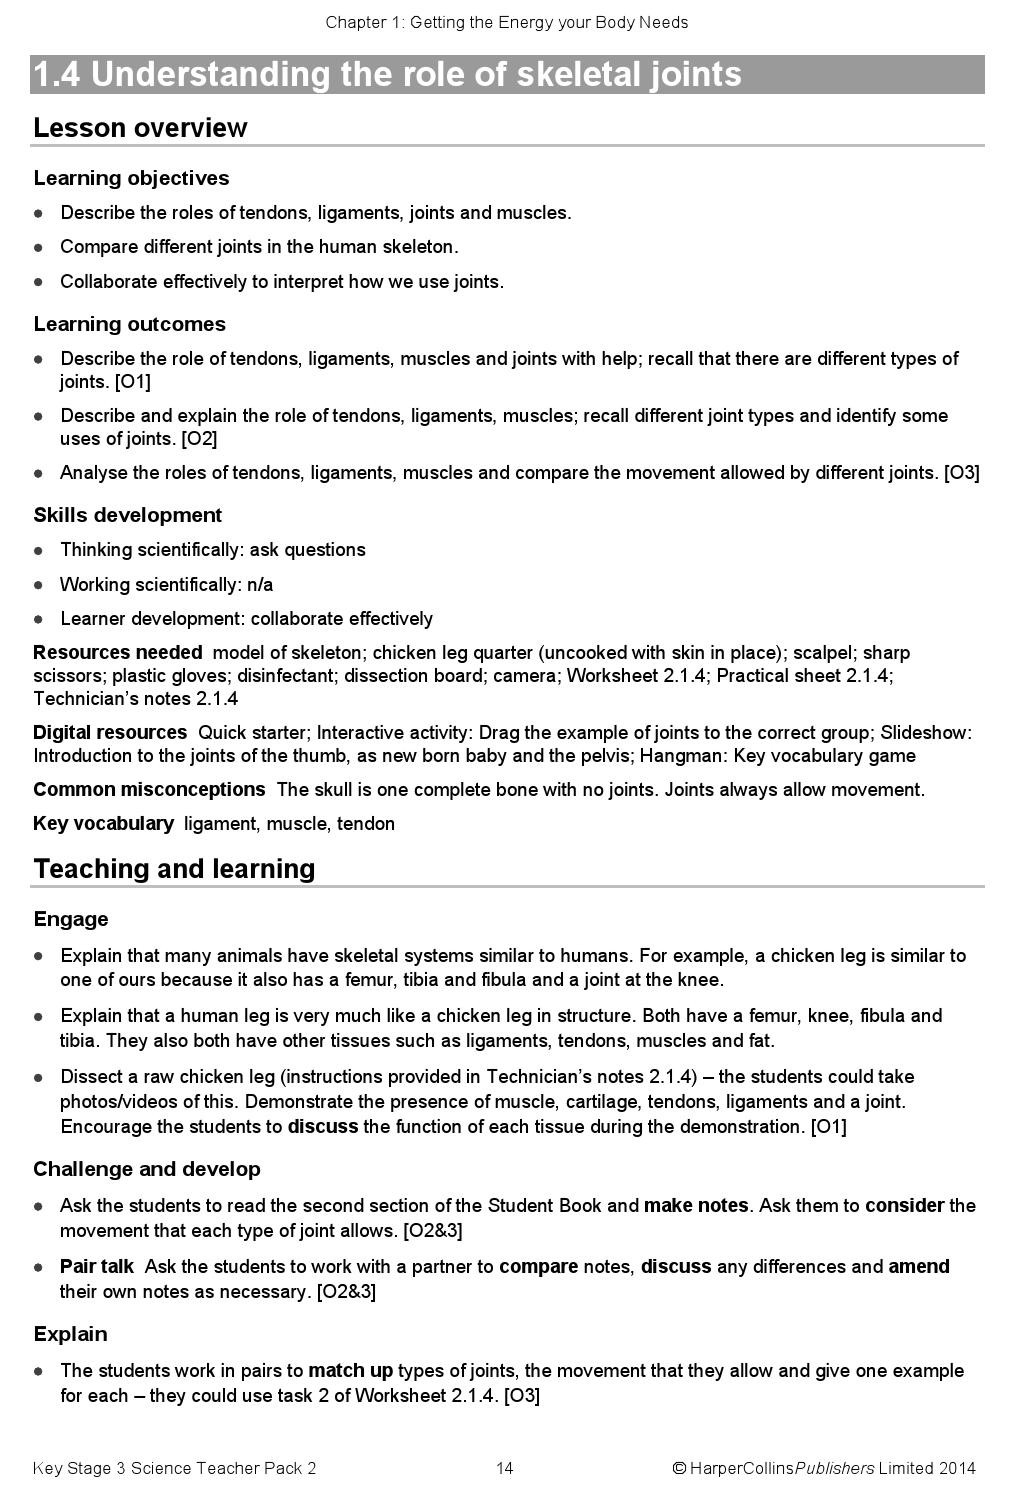 Joints and Movement Worksheet Key Stage Three Science Teacher Pack 2 by Collins issuu